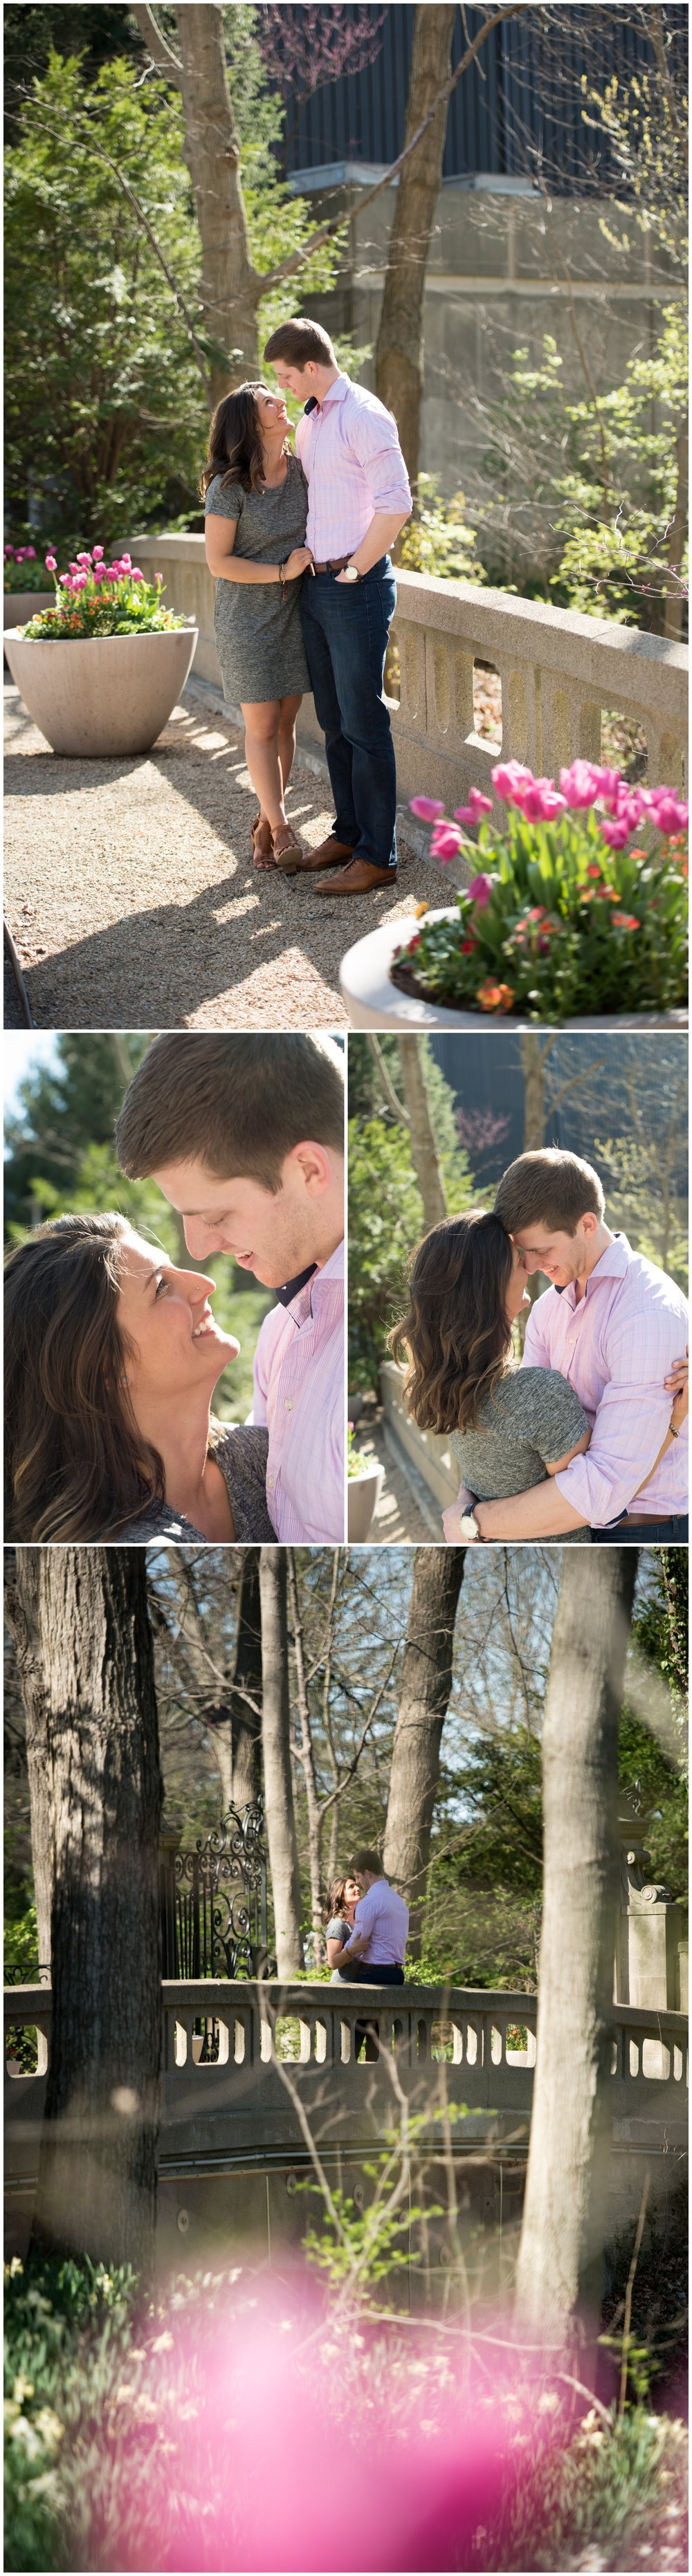 Indianapolis Engagement Session at the IMA by Rachael Foster Photography_0015.jpg